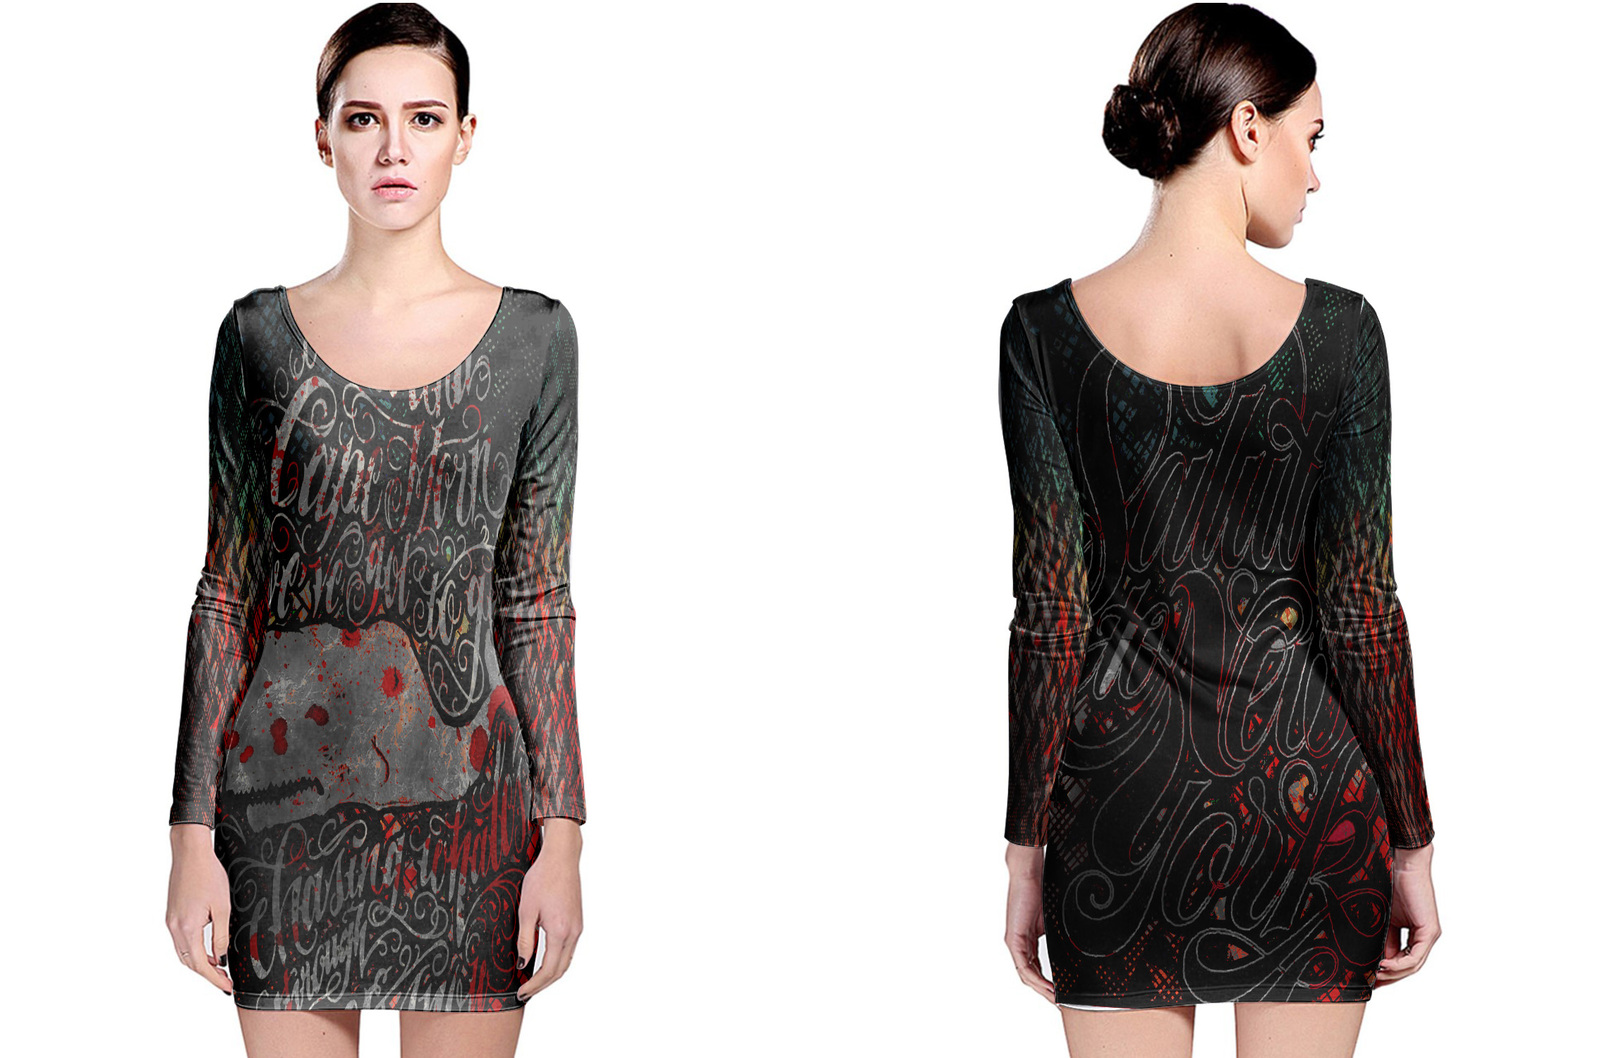 Primary image for Retro Collection #6 Women's Long Sleeve Bodycon Dress